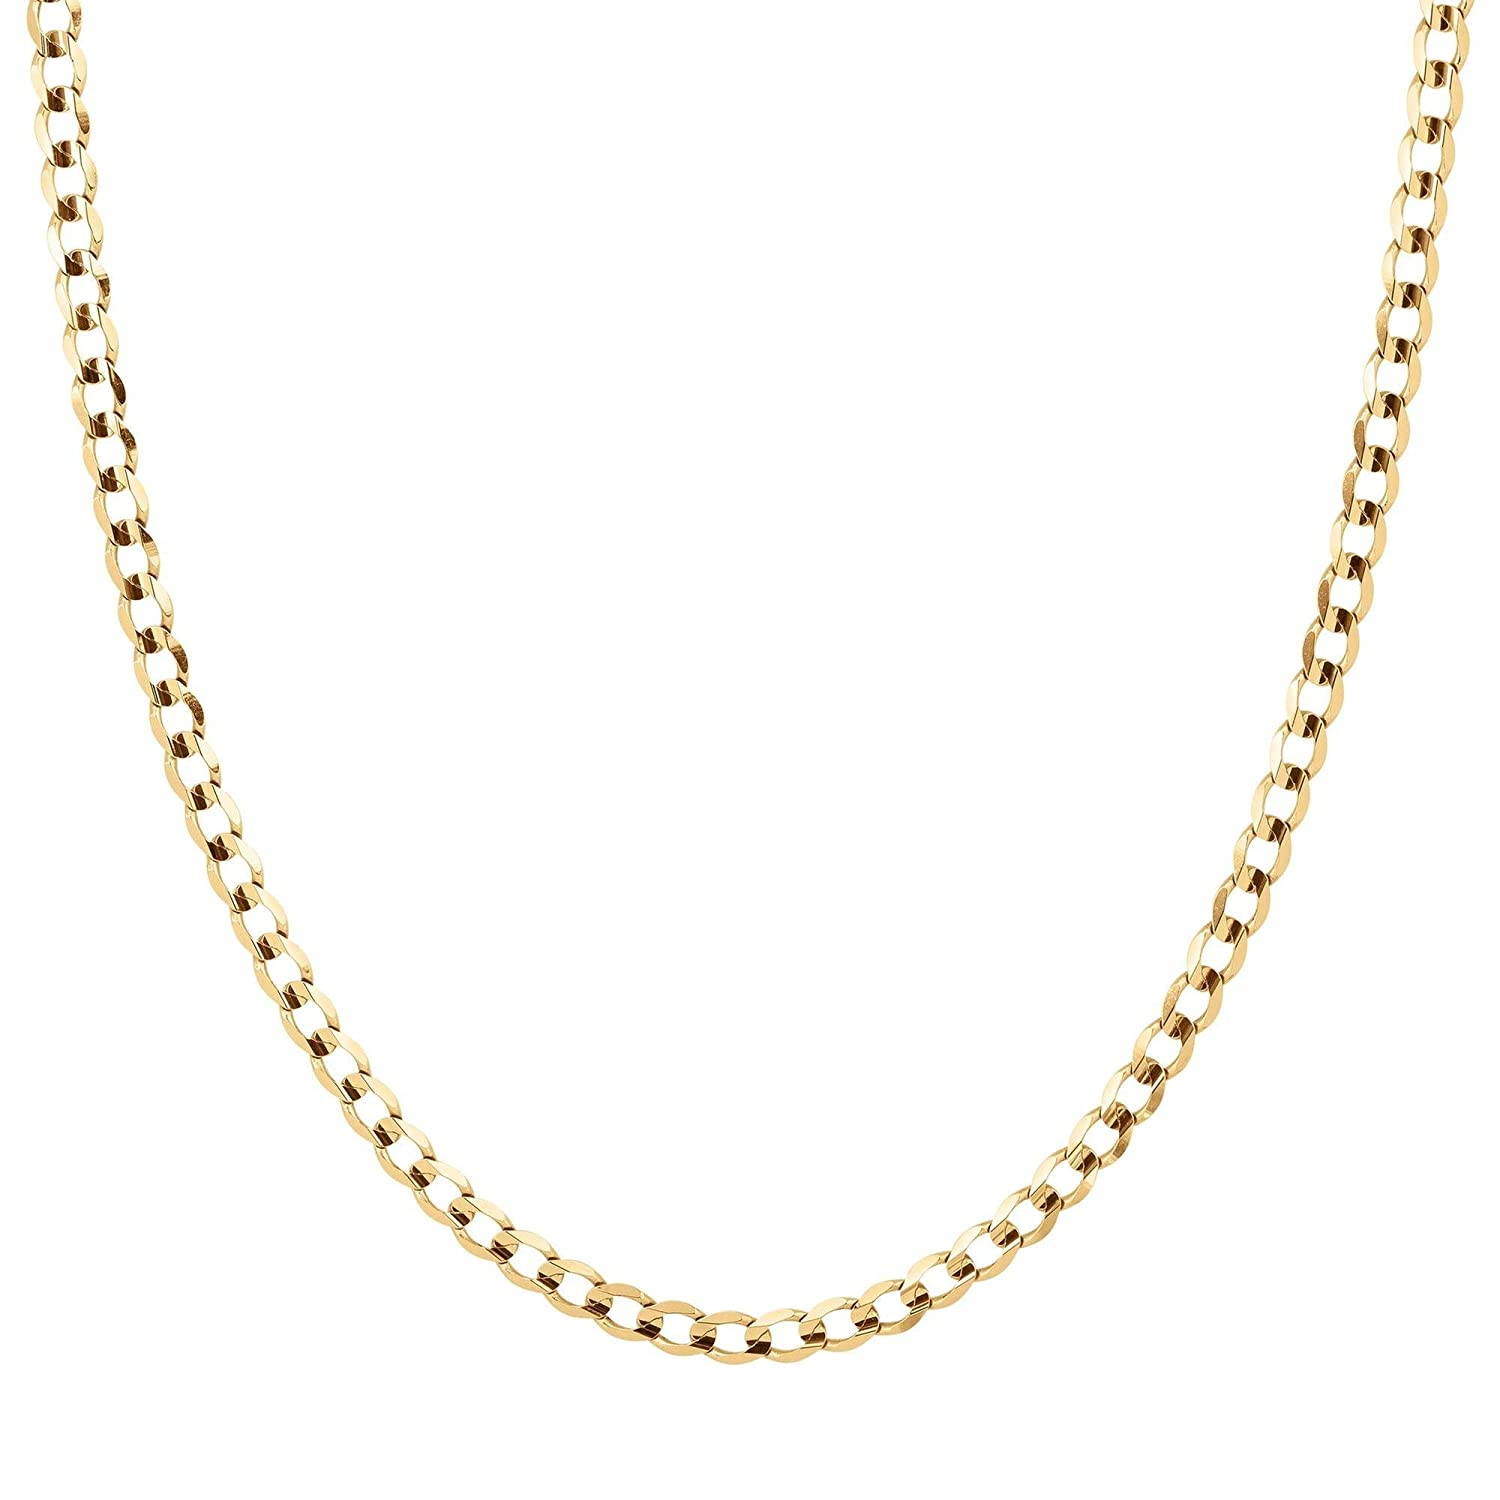 af19544ce59f5 Men's Yellow Gold Concave Curb Chain Necklace, 22 inches | Amazon.com